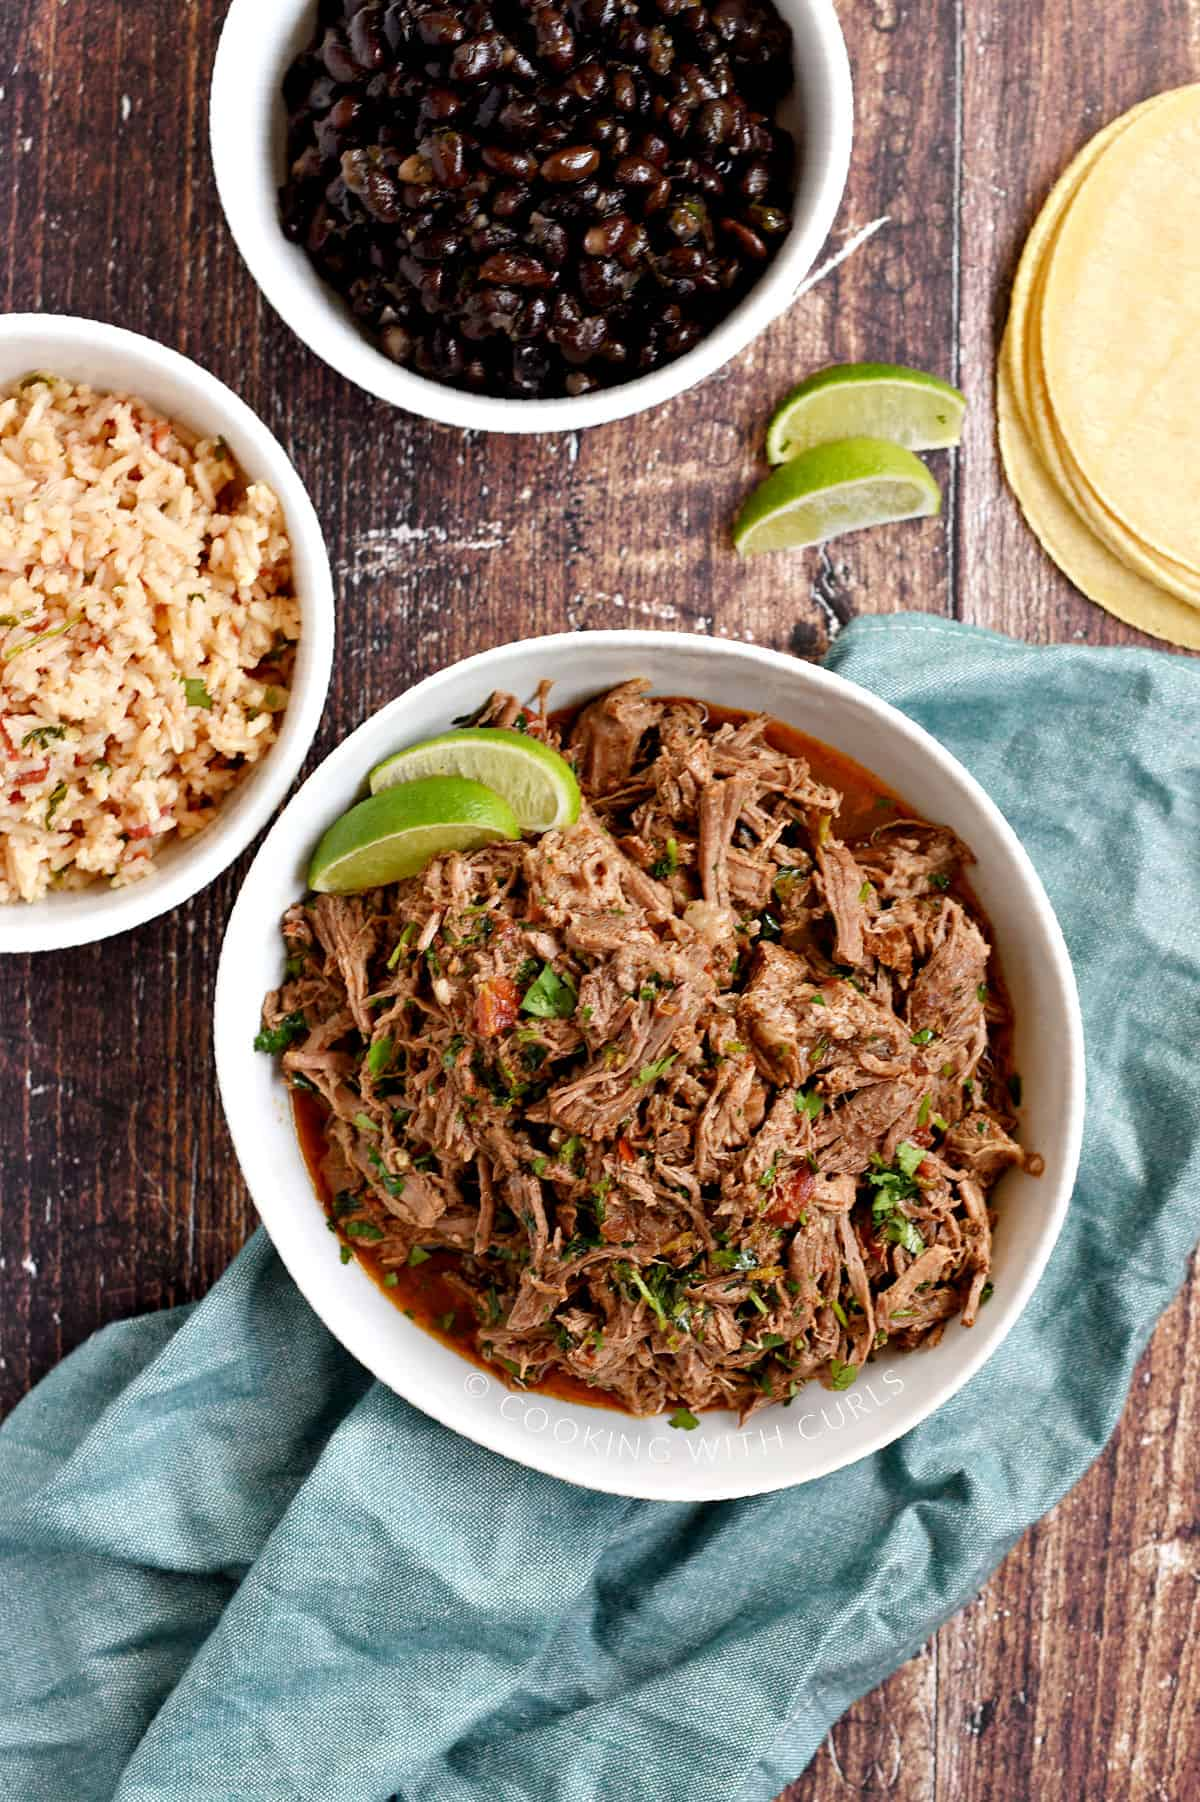 A bowl of shredded beef, rice, and black beans with corn tortillas on the side.